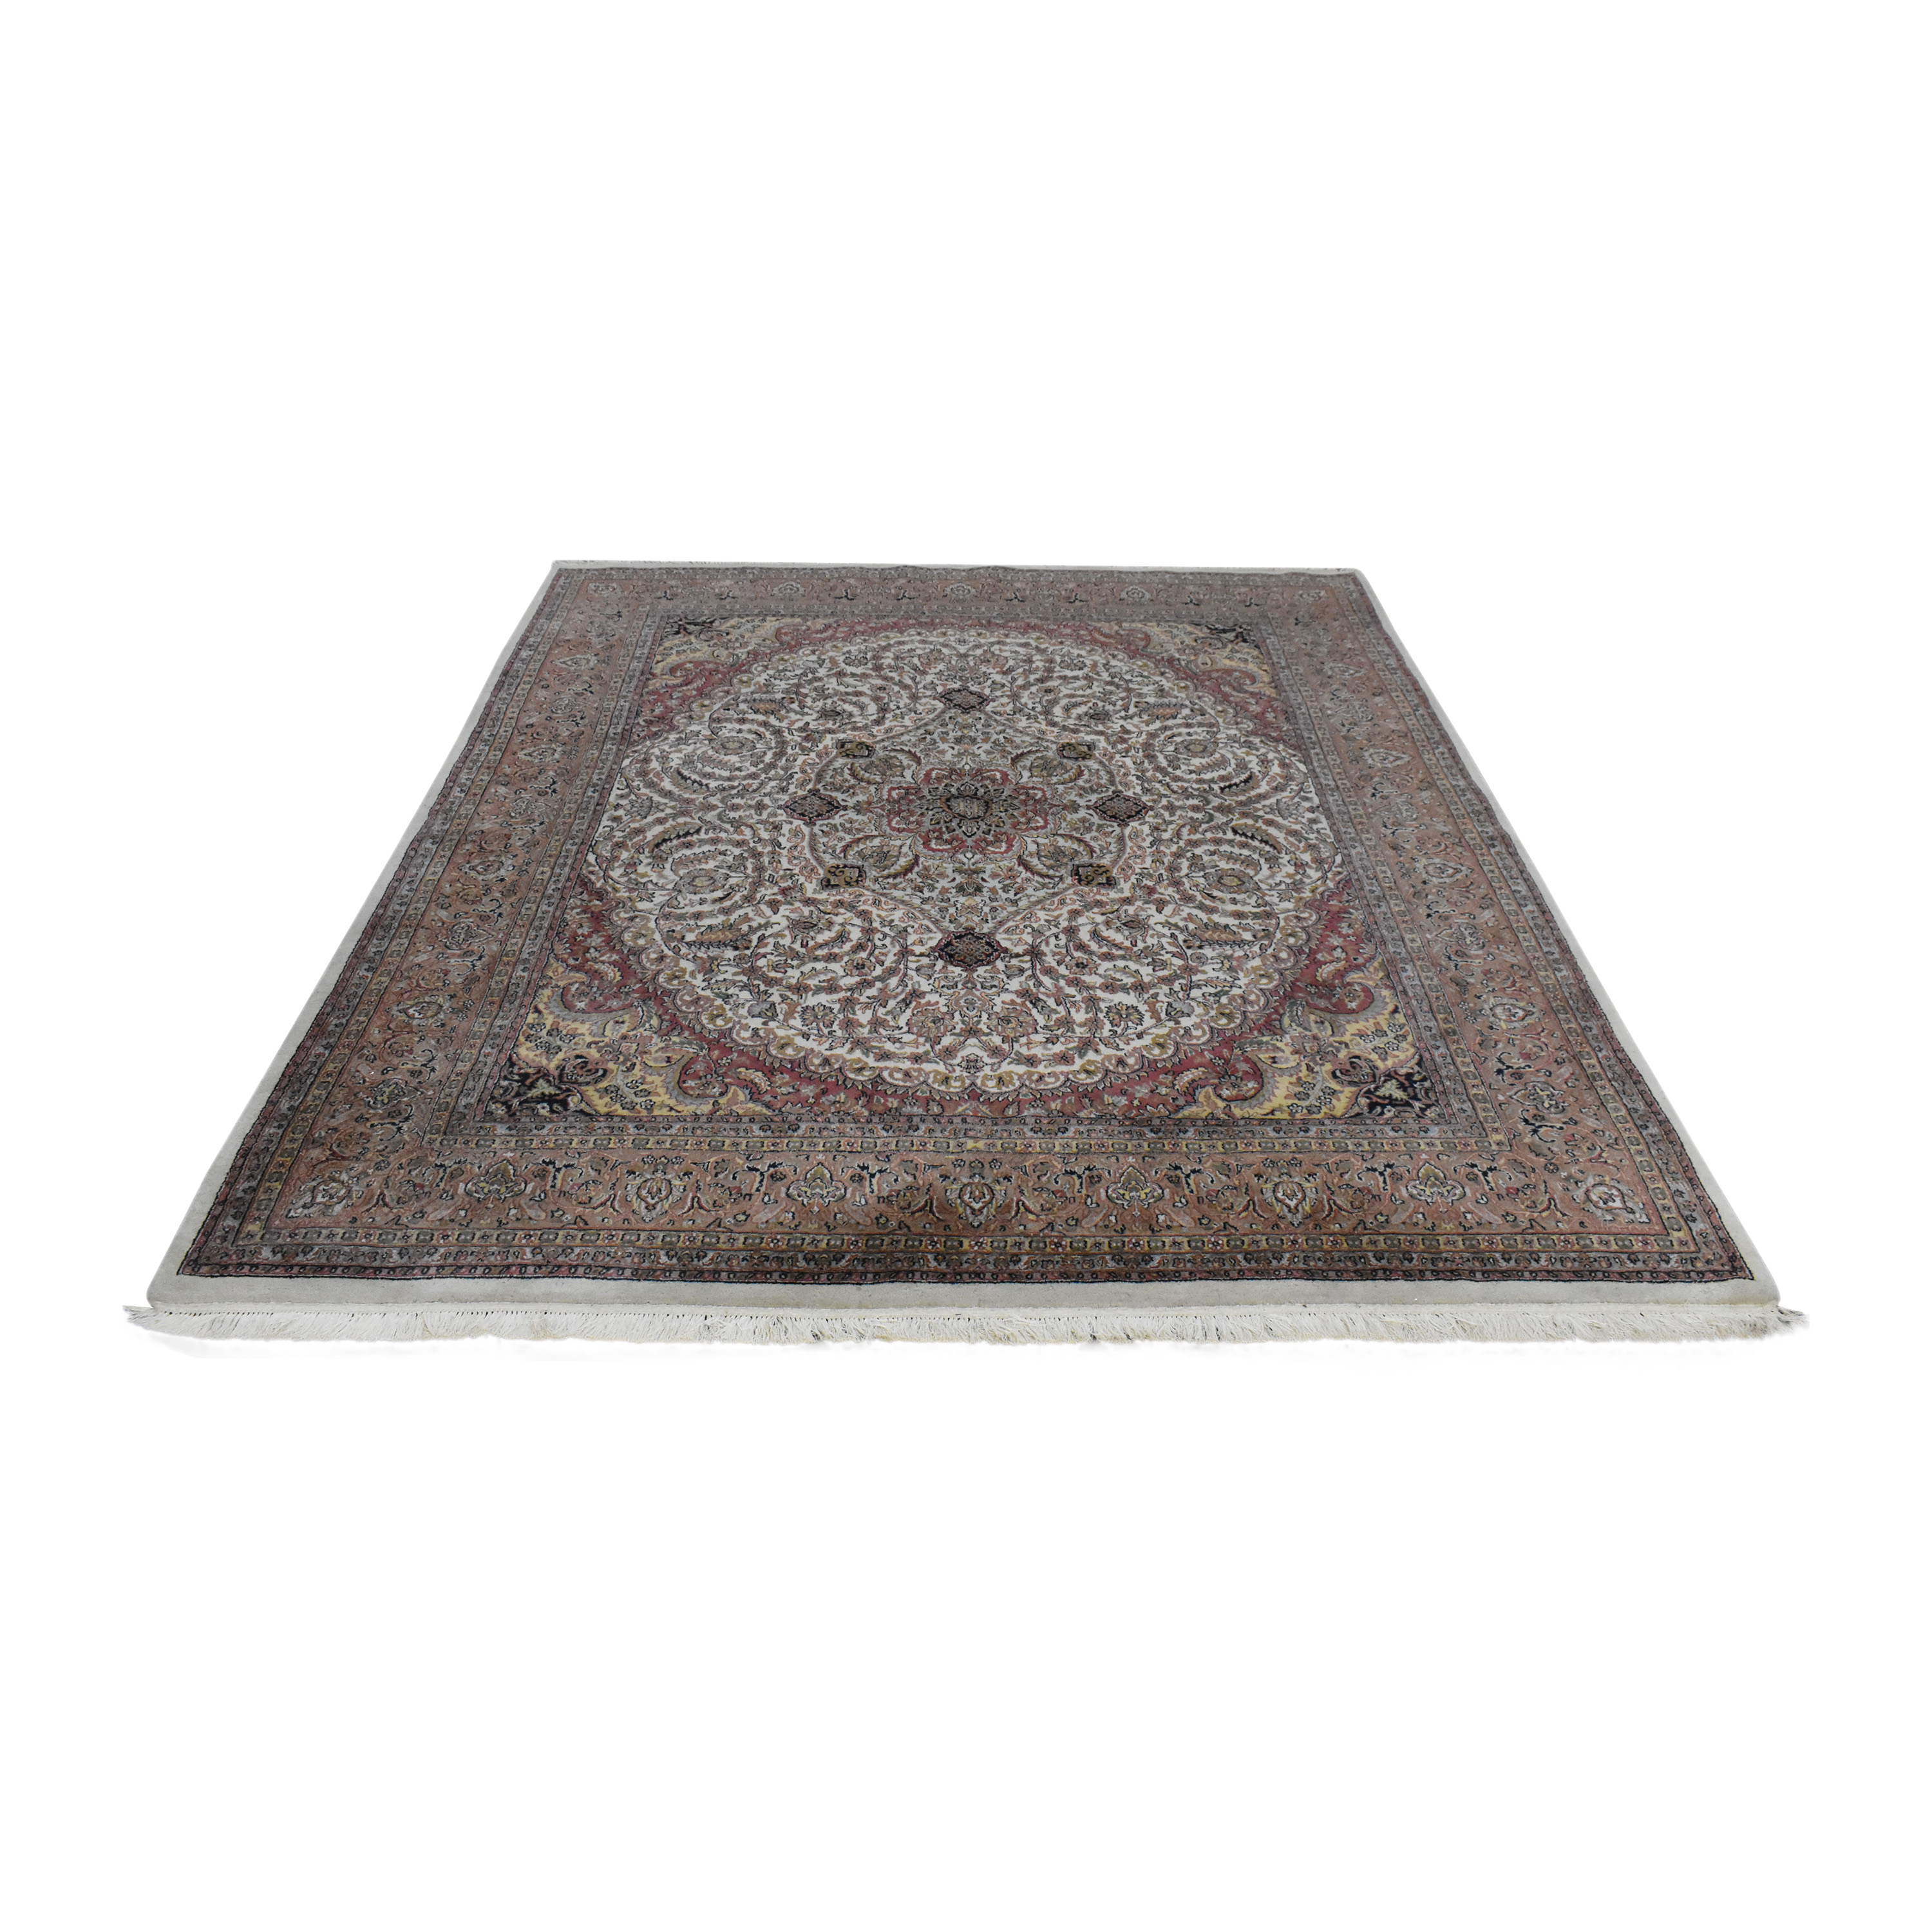 Patterned Area Rug multi